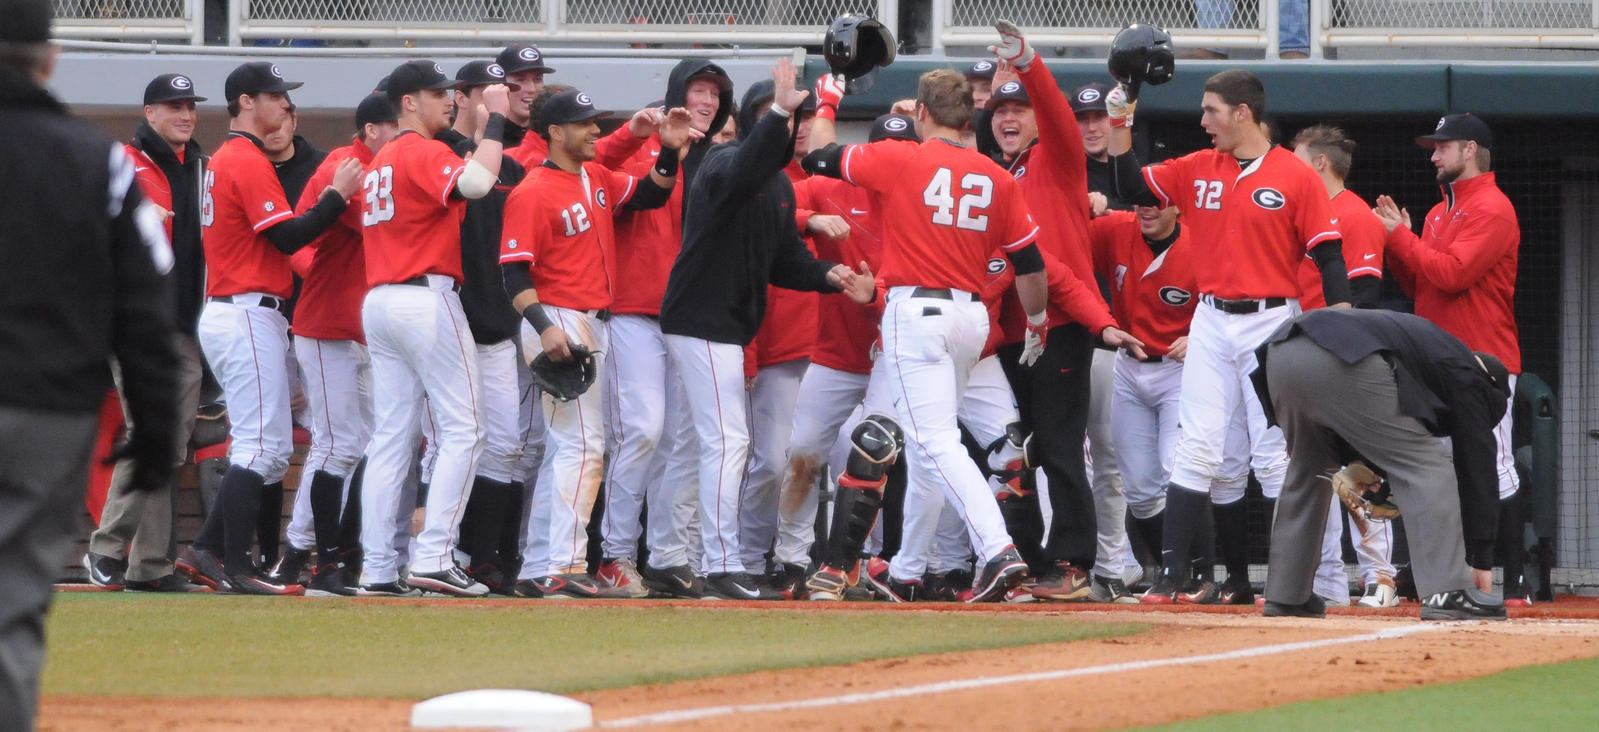 Georgia players celebrate after Georgia's Trevor Kieboom (42) hit a home run during a men's NCAA baseball game between the University of Georgia and Florida State University on Saturday, February 21, 2015 in Athens, Ga. (Photo by Sean Taylor)